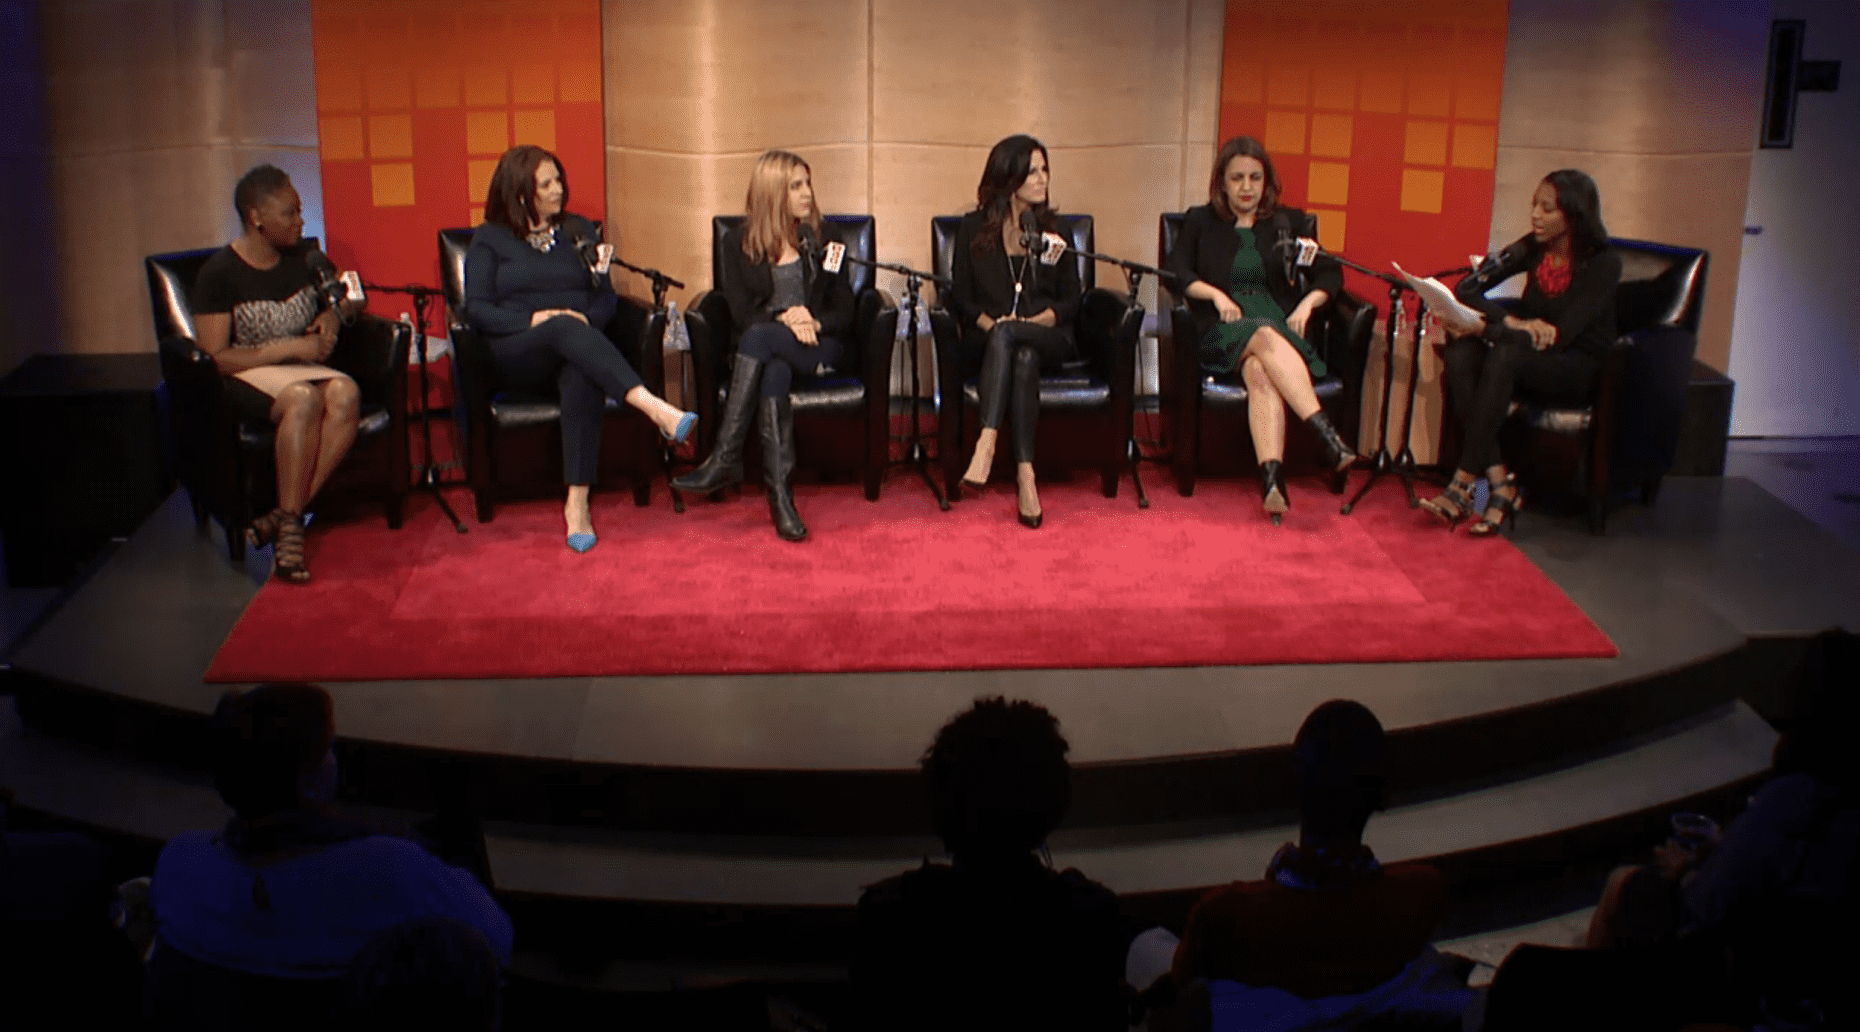 Political Party with Keli Goff: What's a Woman's Issue?